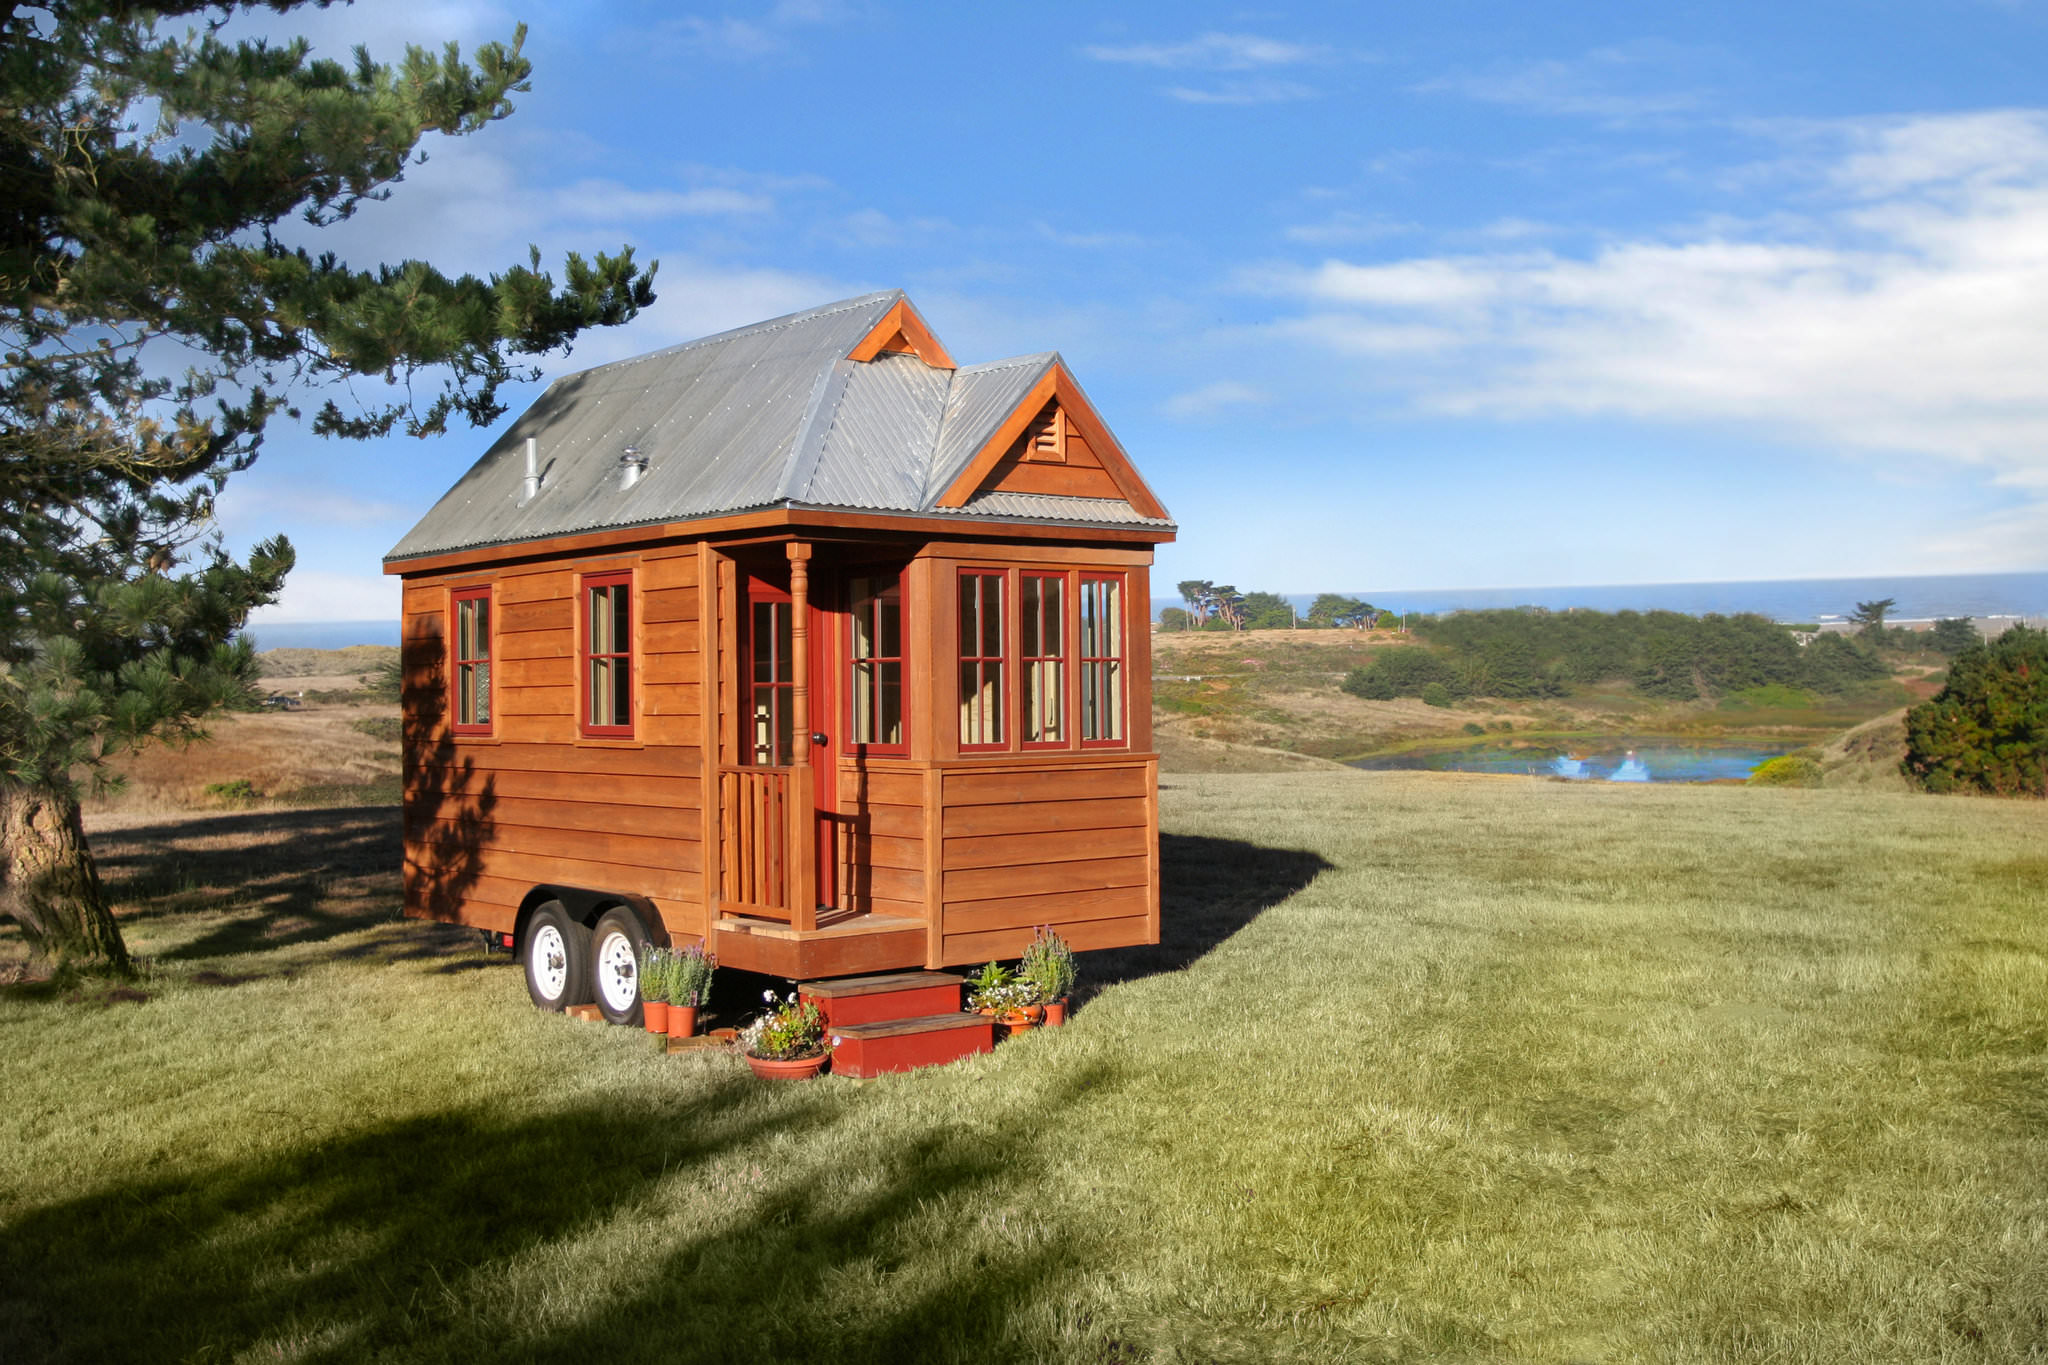 Log Homes & Log Cabin KitsAward Winning Plans · Custom Online Design Tool · Plans & Log Home Kits.